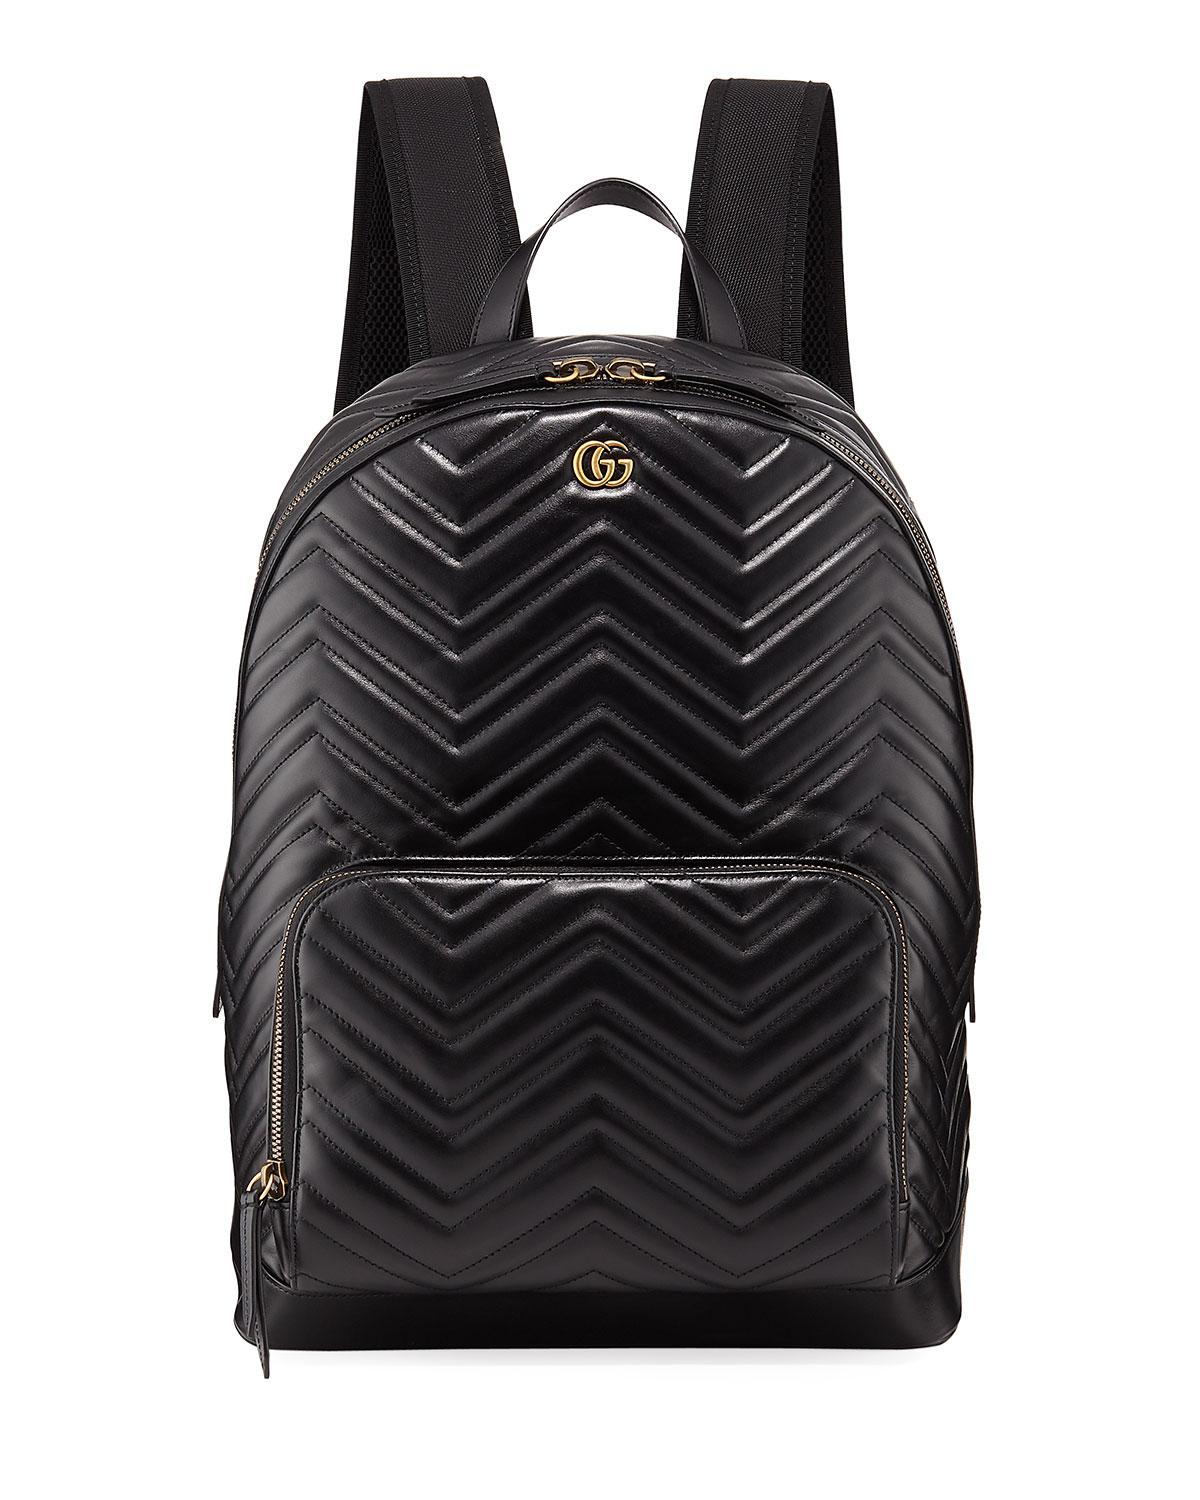 295c655c832 Gucci Men s GG Marmont Quilted Leather Backpack in Black - Lyst